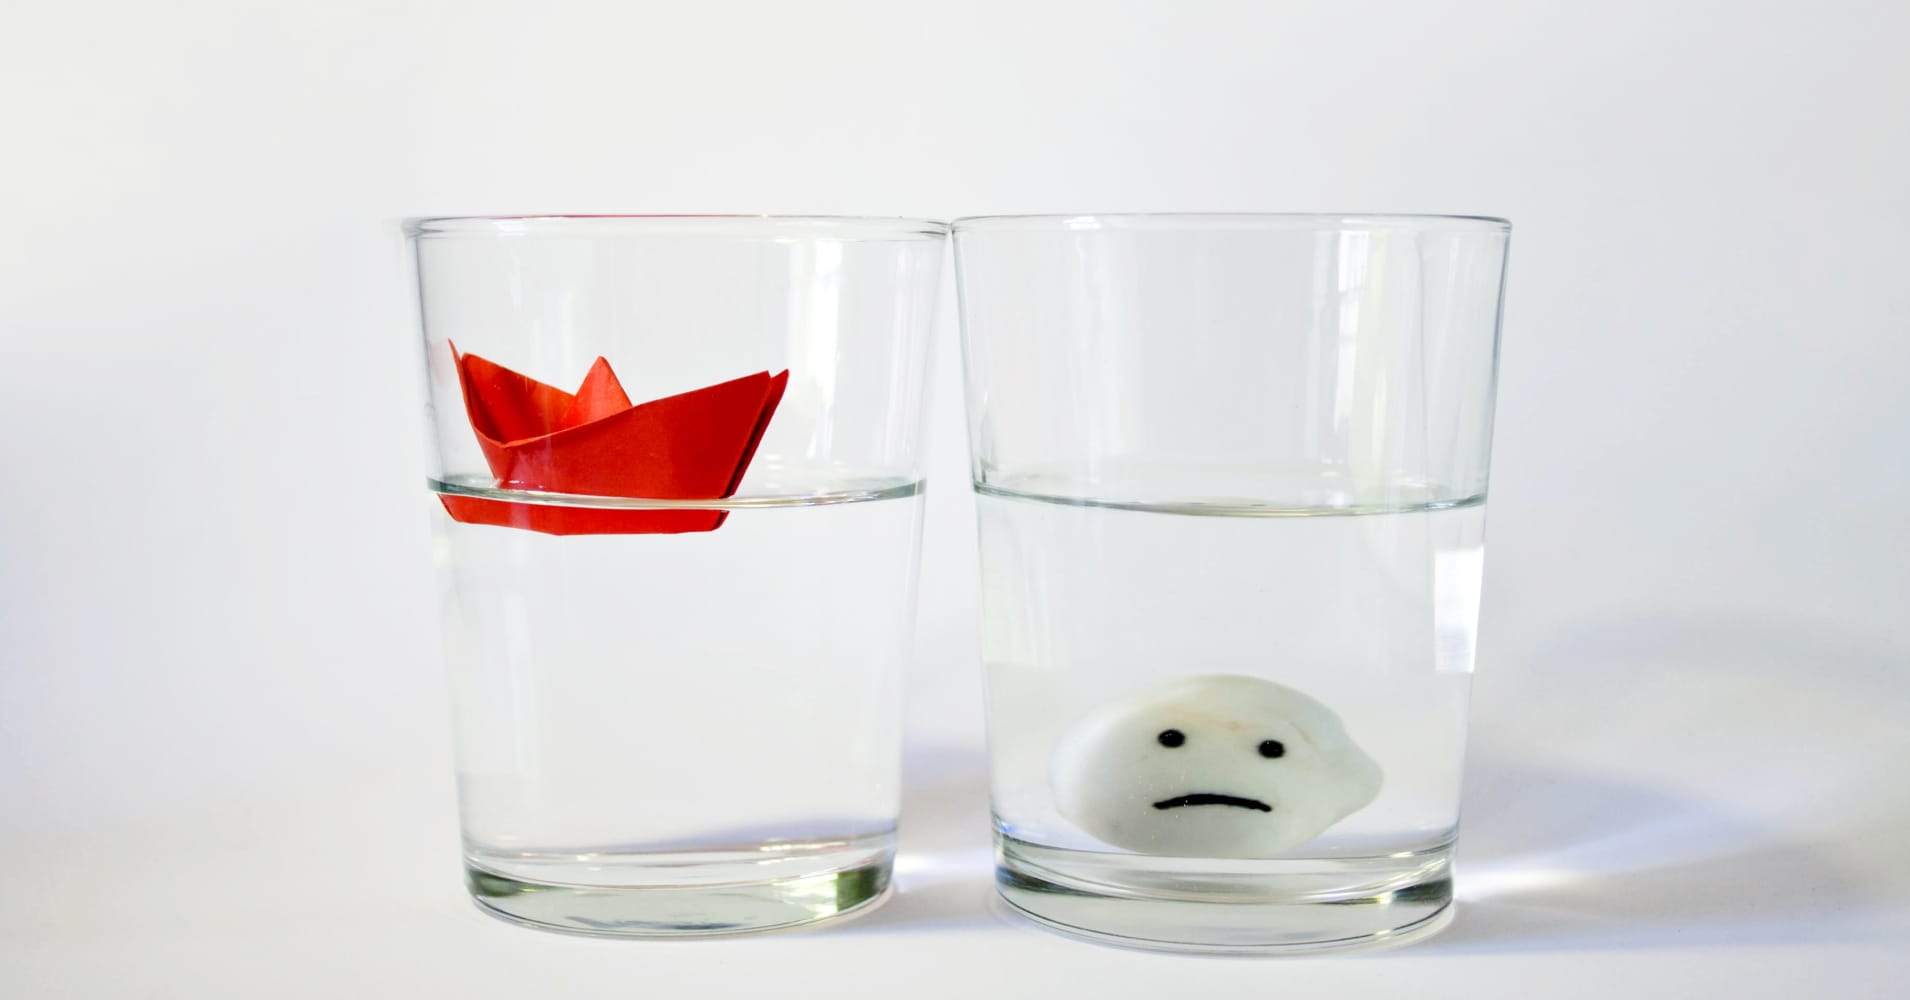 Two glasses of water half full representing two opposite attitudes: optimistic versus pessimistic